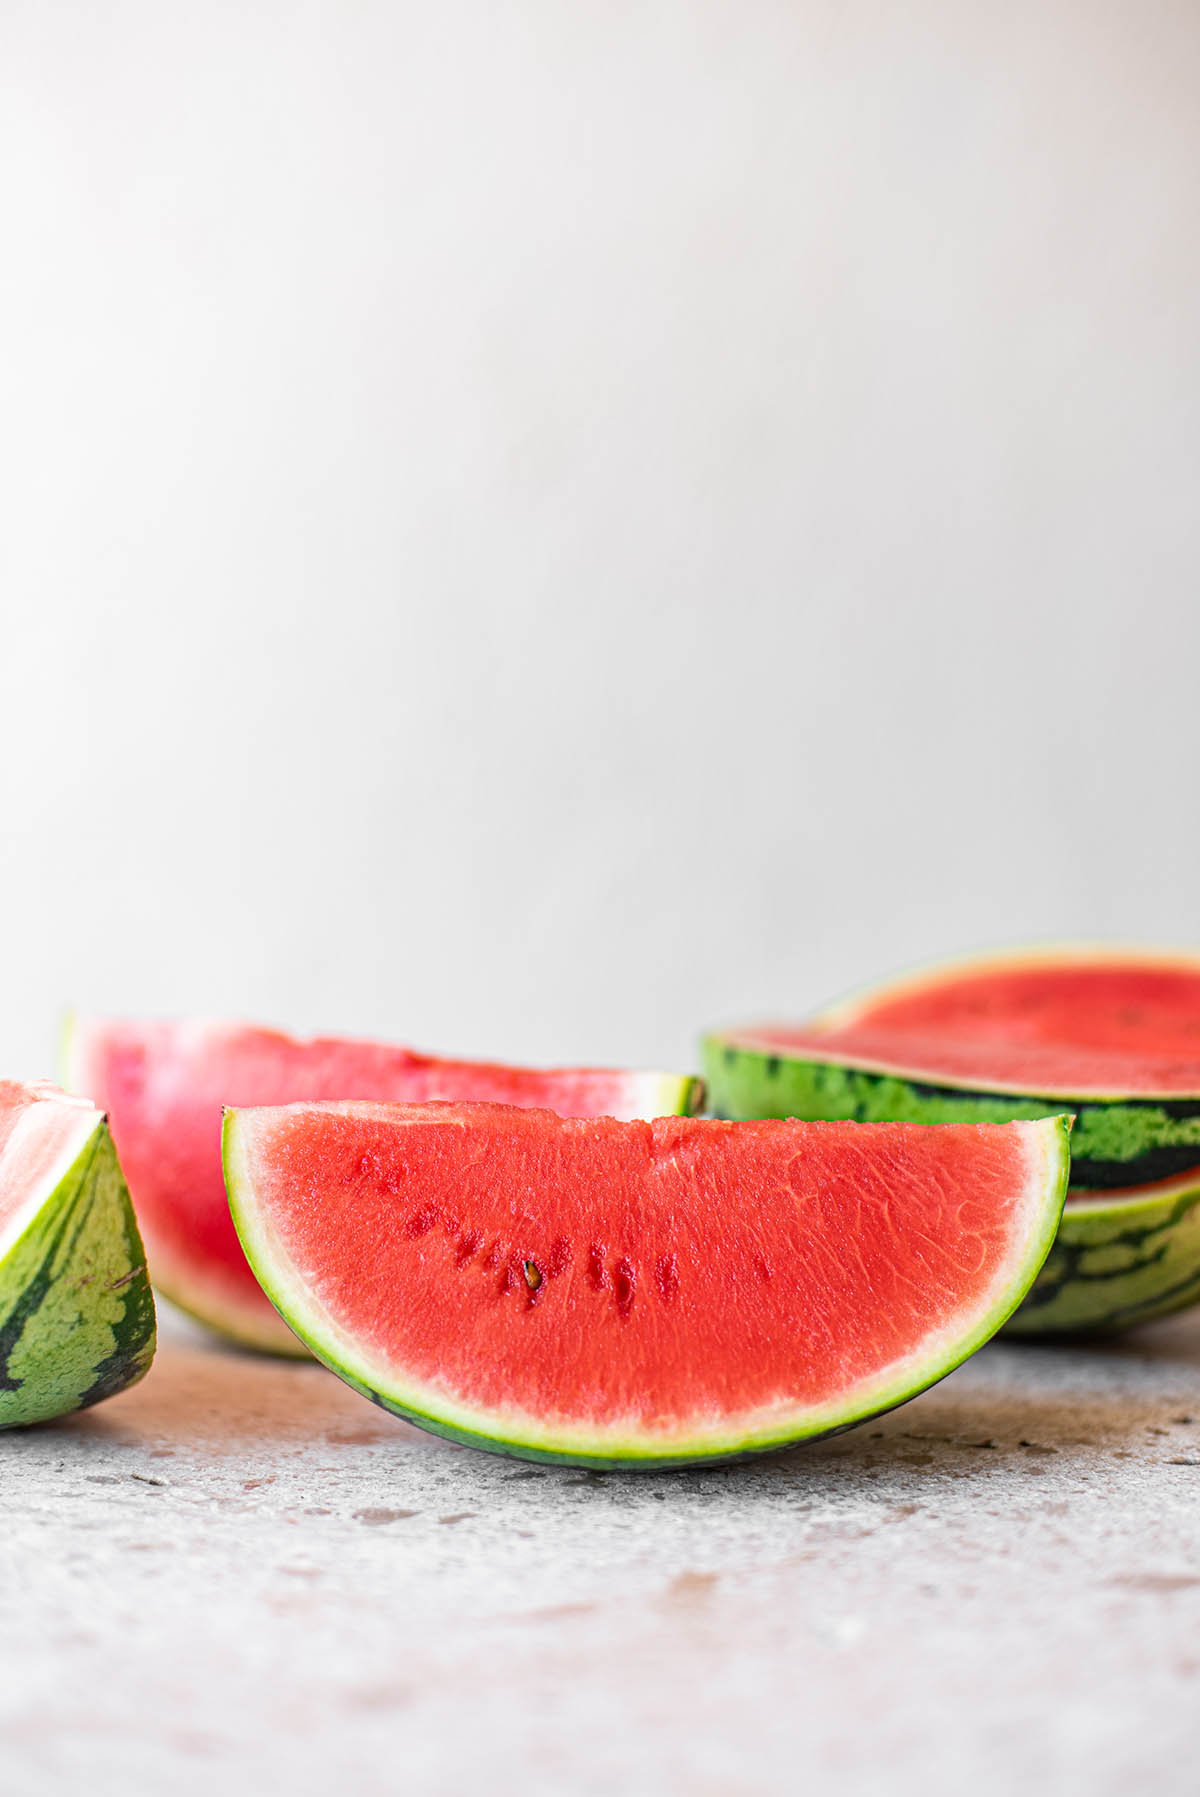 Wedges of watermelon arranged together.